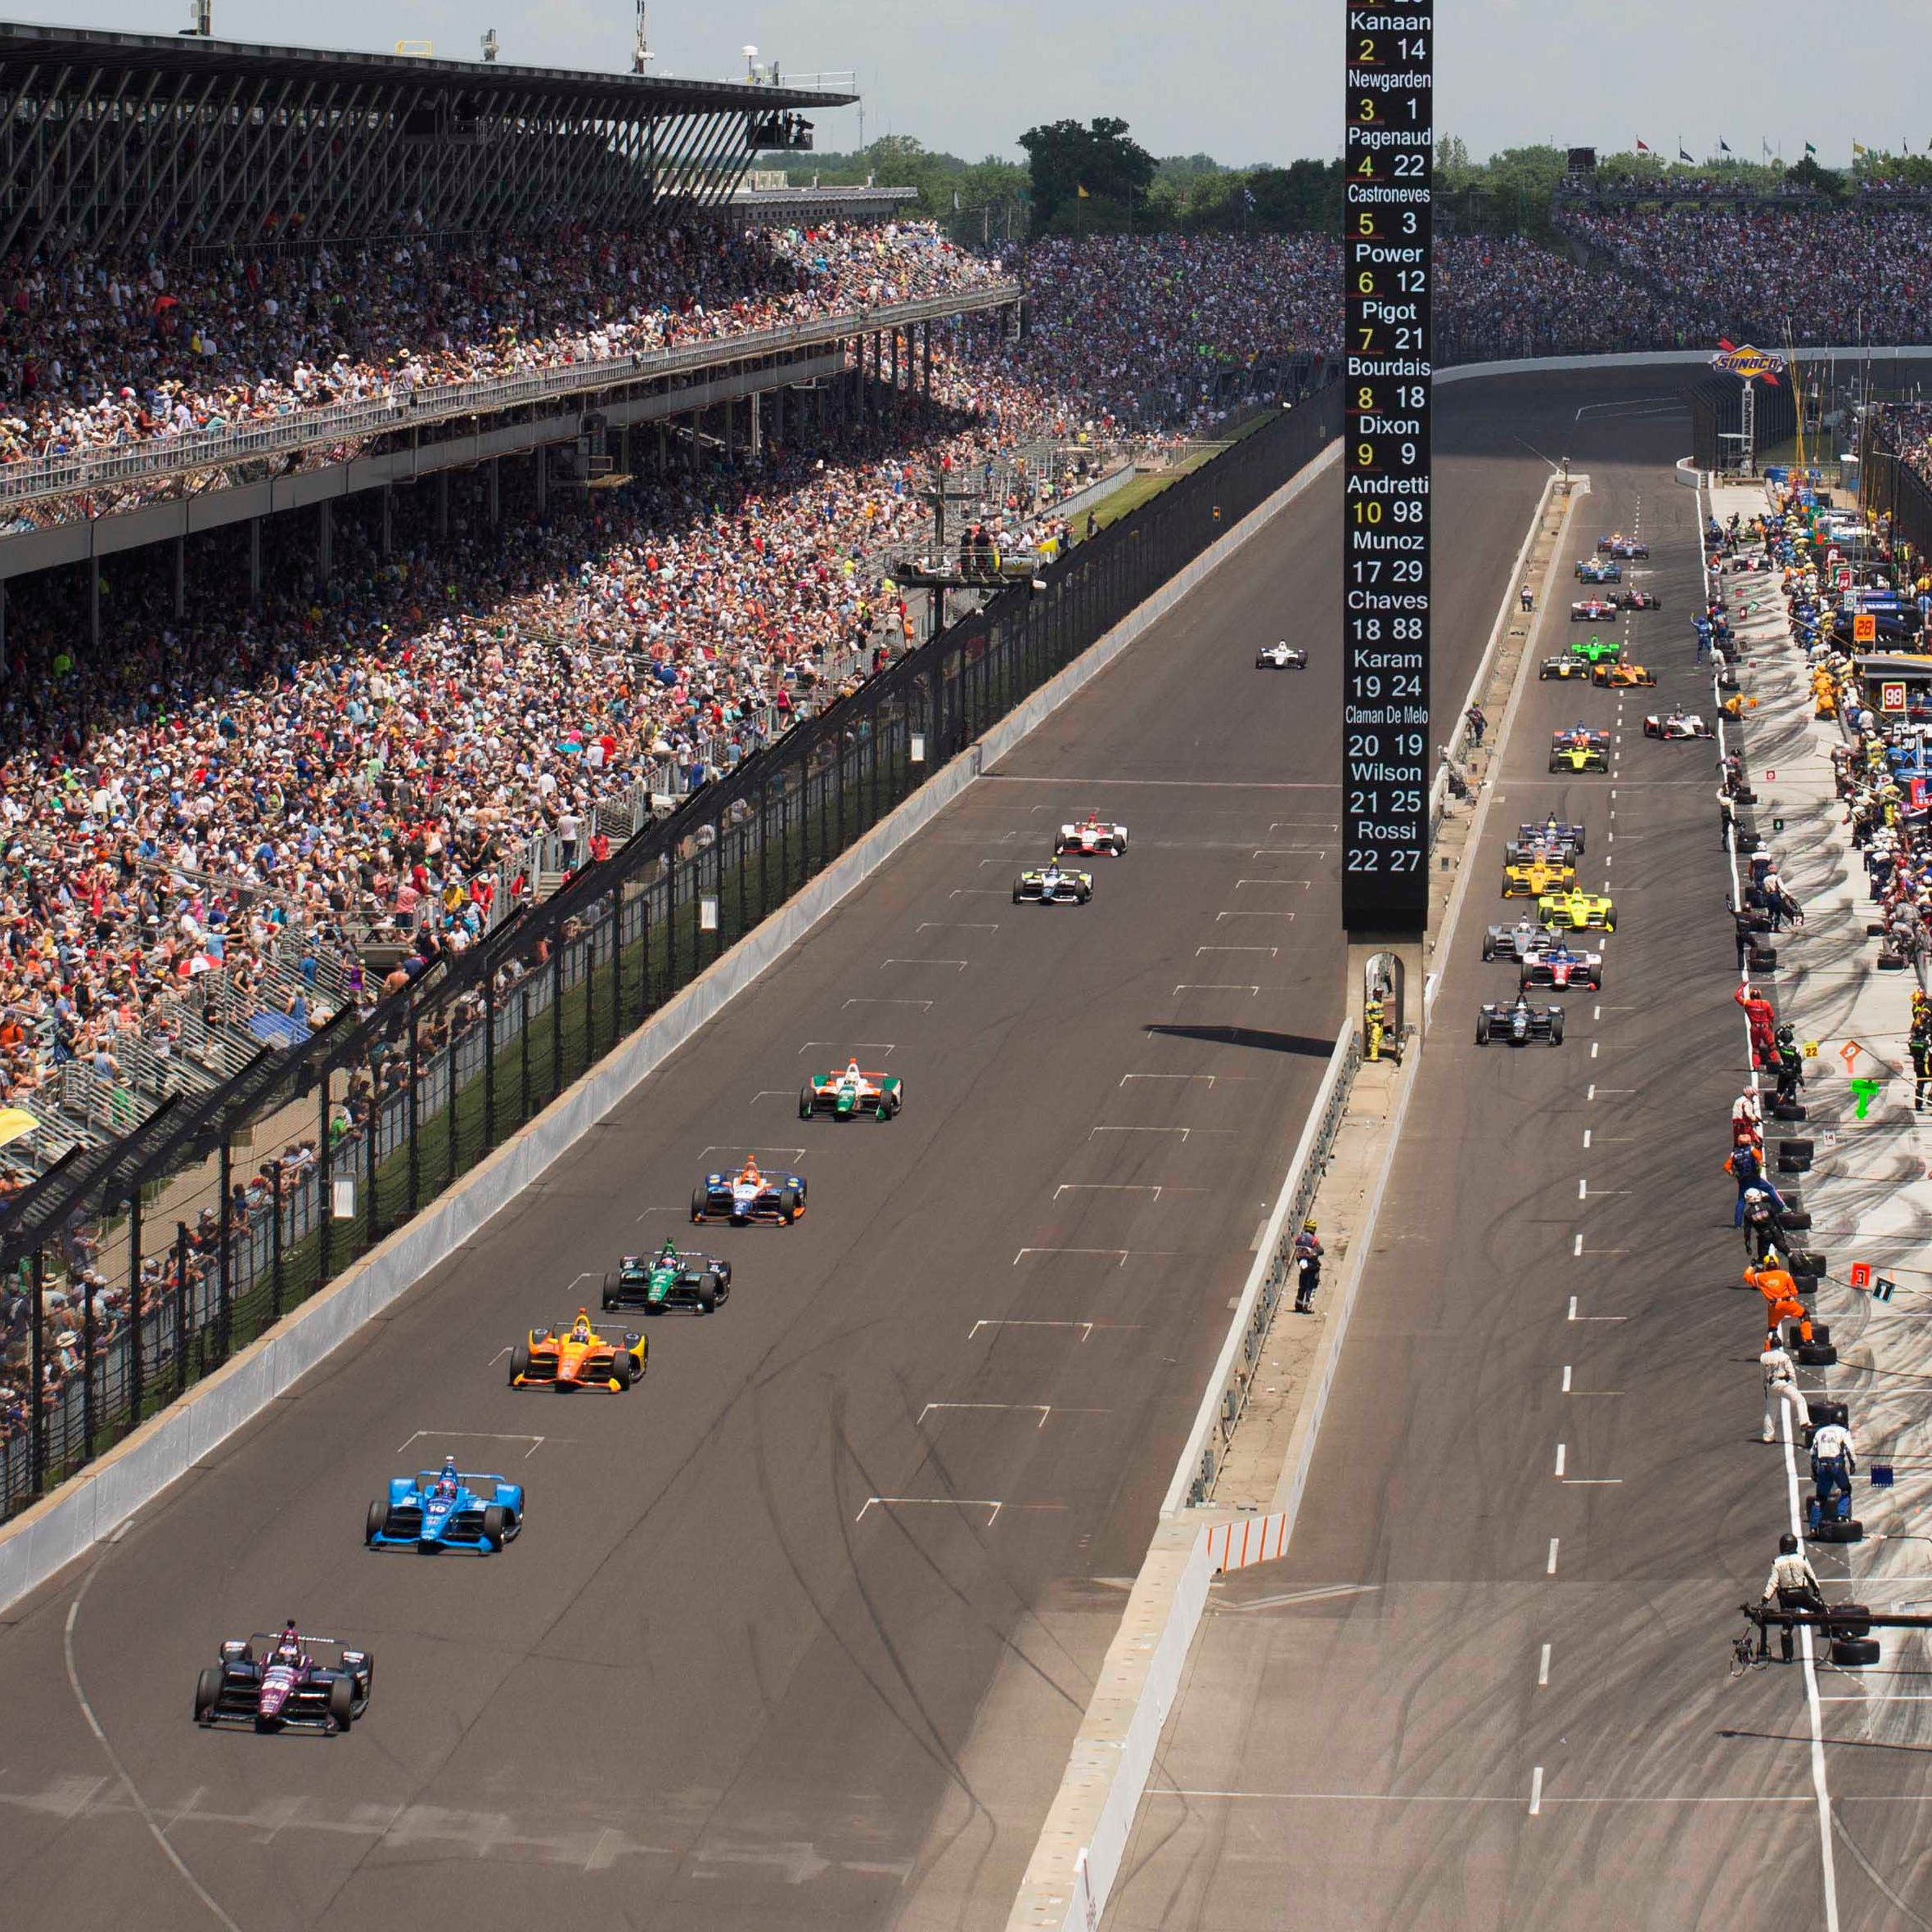 Indianapolis 500 2019: Schedule, lineup, TV, weather information and more